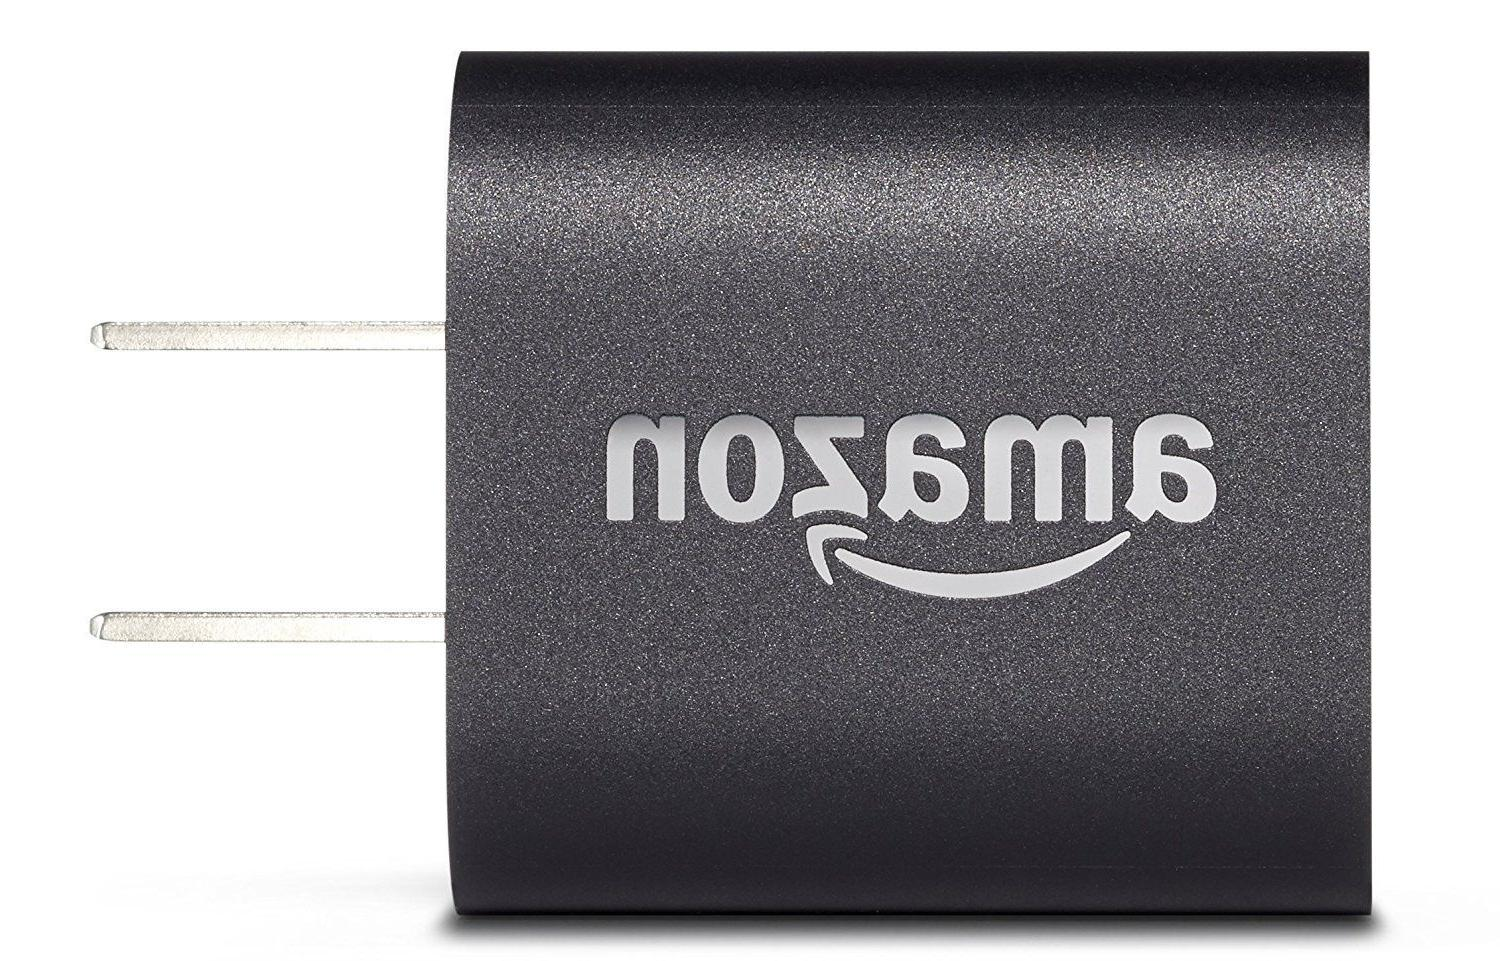 Amazon USB Charger and Power Adapter for